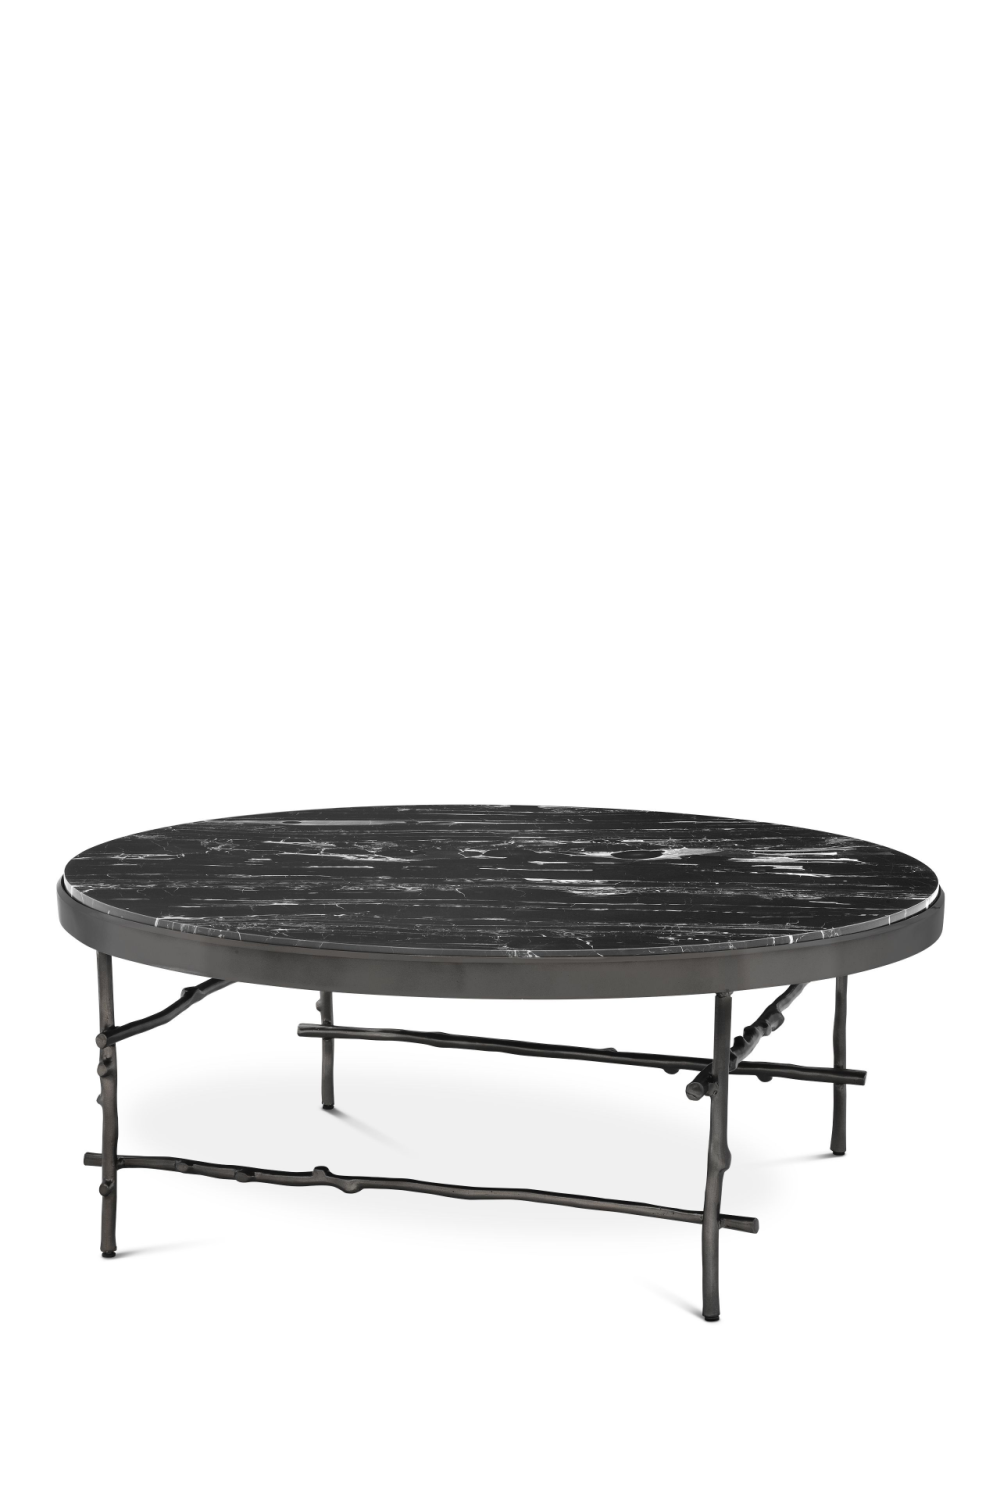 Round Marble Top Coffee Table | Eichholtz Tomasso | #1 Eichholtz